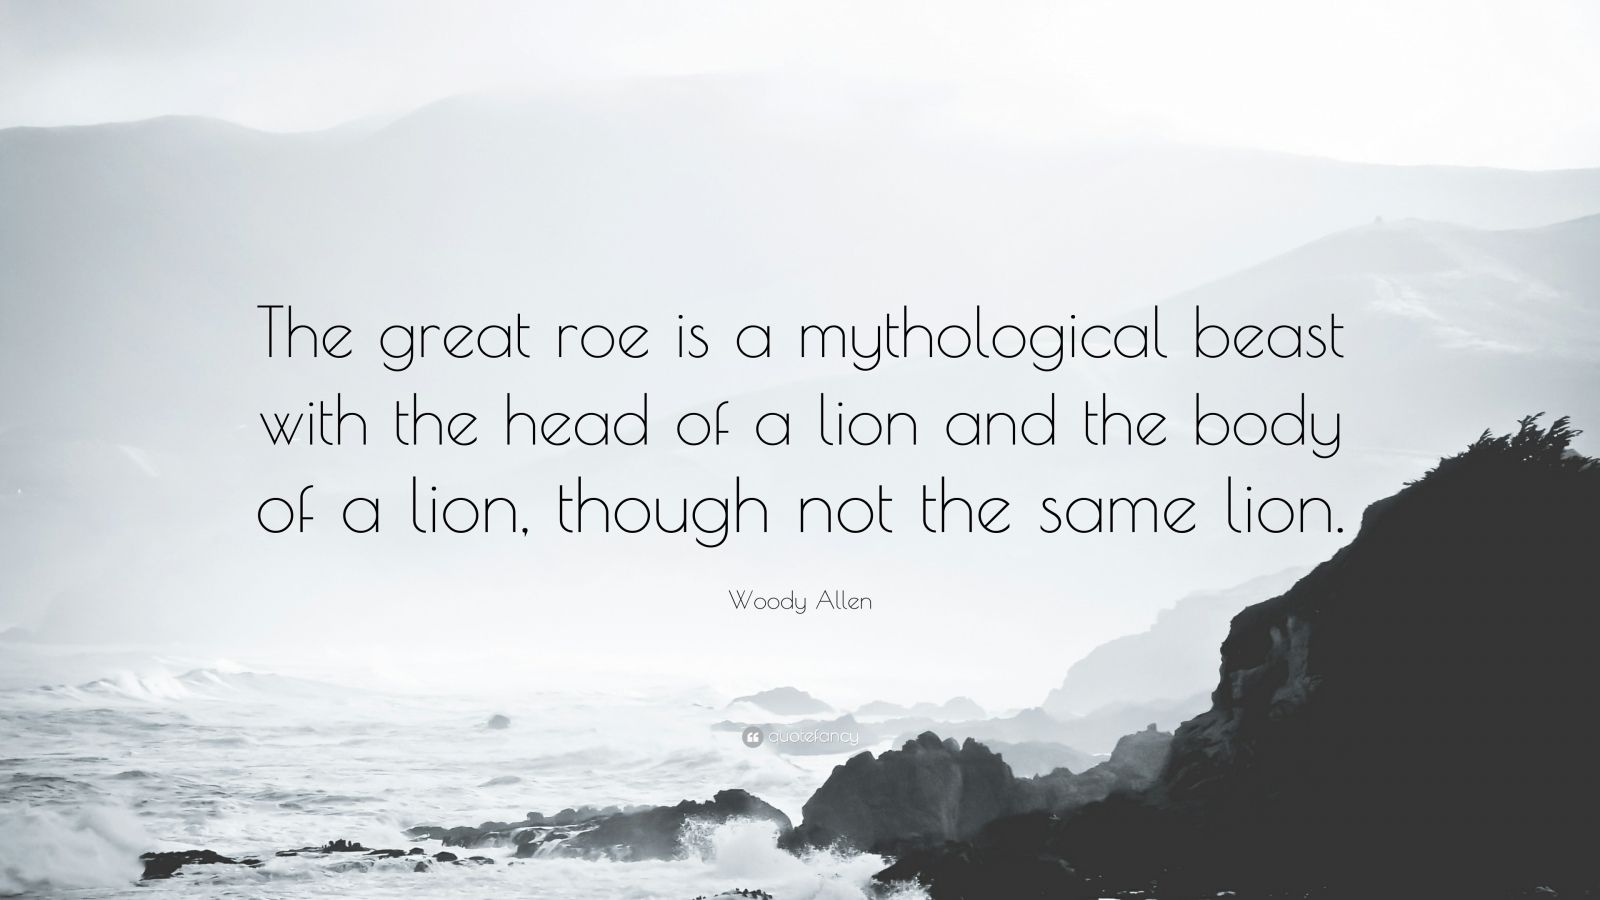 """Woody Allen Quote: """"The great roe is a mythological beast with the head of a lion and the body of a lion, though not the same lion."""""""